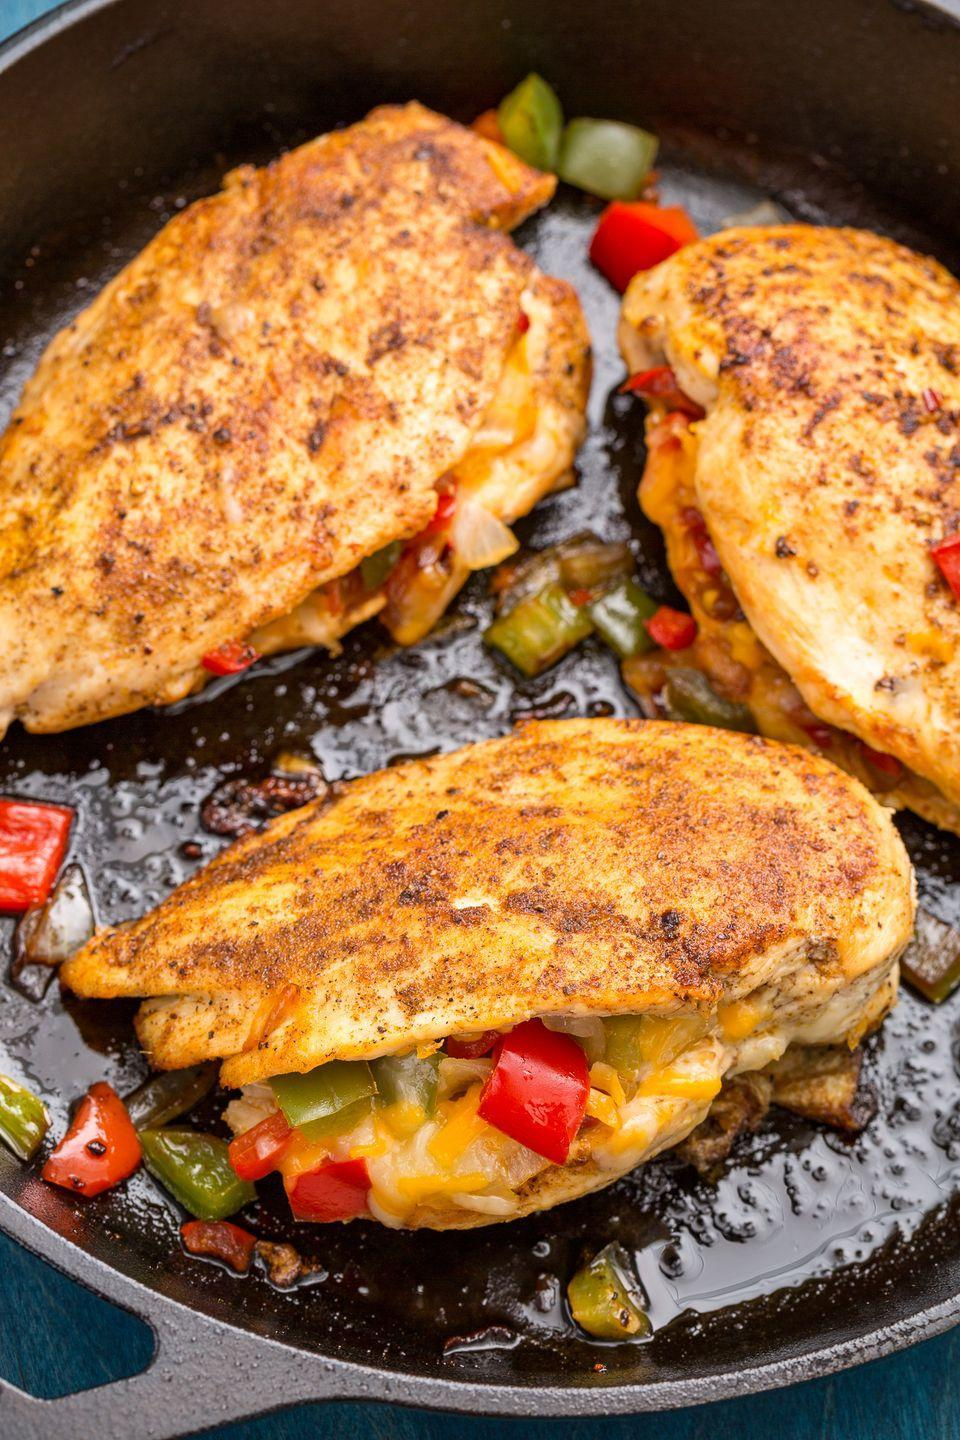 """<p>This zesty, cheesy chicken breast will slay your dinner table.</p><p>Get the recipe from <a href=""""https://patty-delish.hearstapps.com/cooking/recipe-ideas/recipes/a46891/cajun-stuffed-chicken-recipe/"""" rel=""""nofollow noopener"""" target=""""_blank"""" data-ylk=""""slk:Delish"""" class=""""link rapid-noclick-resp"""">Delish</a>.</p>"""